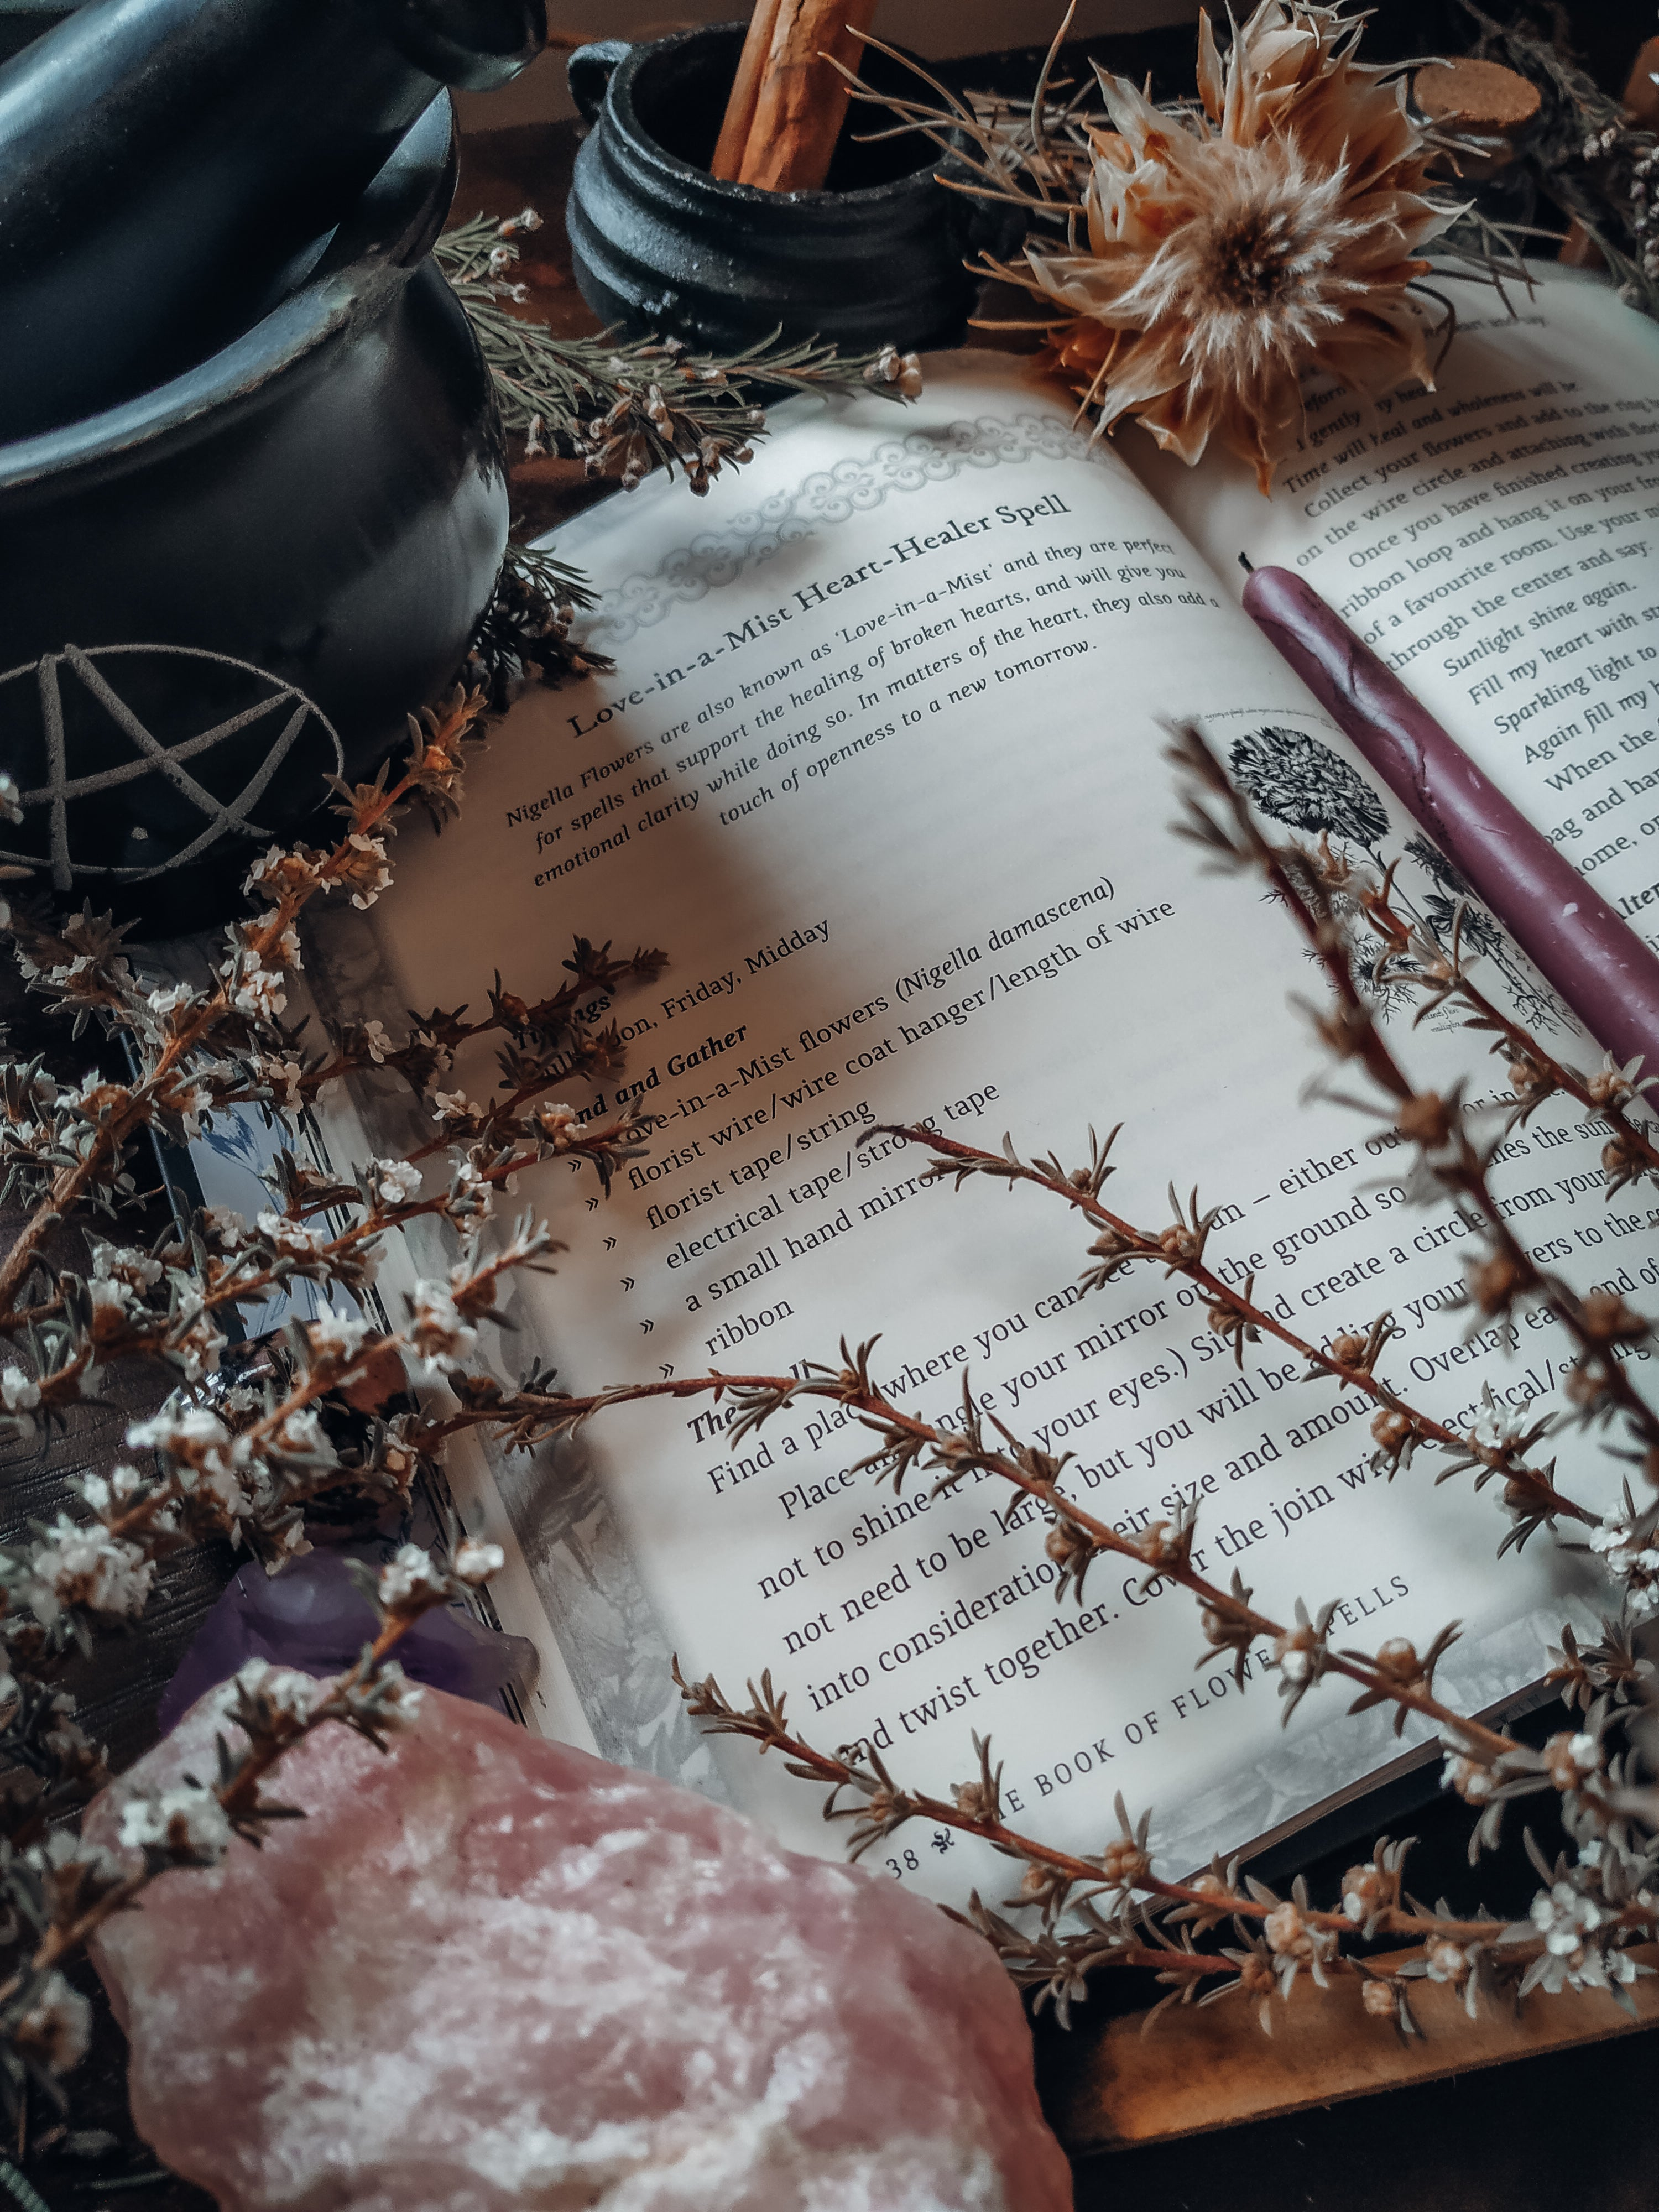 The Book of Flower Spells (Cheralyn Darcey)